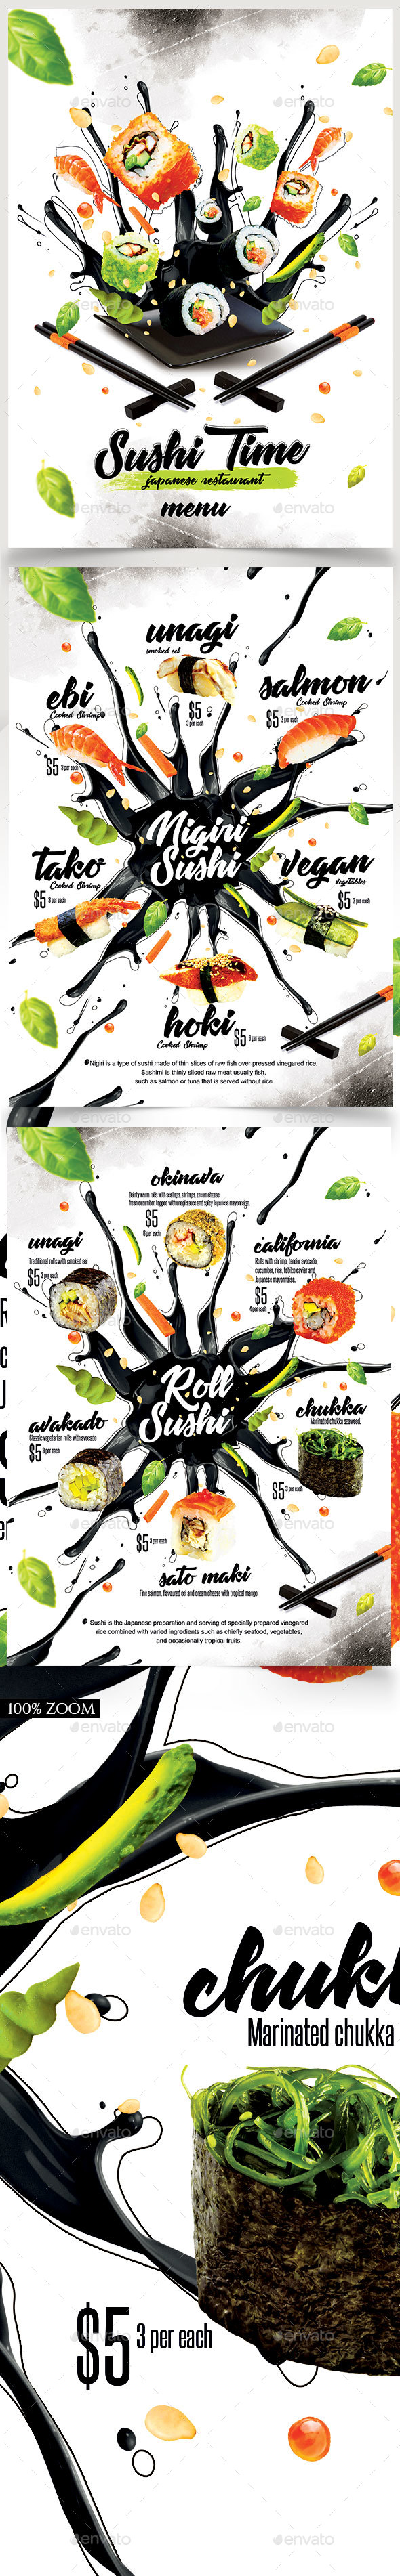 Sushi Menu - Food Menus Print Templates